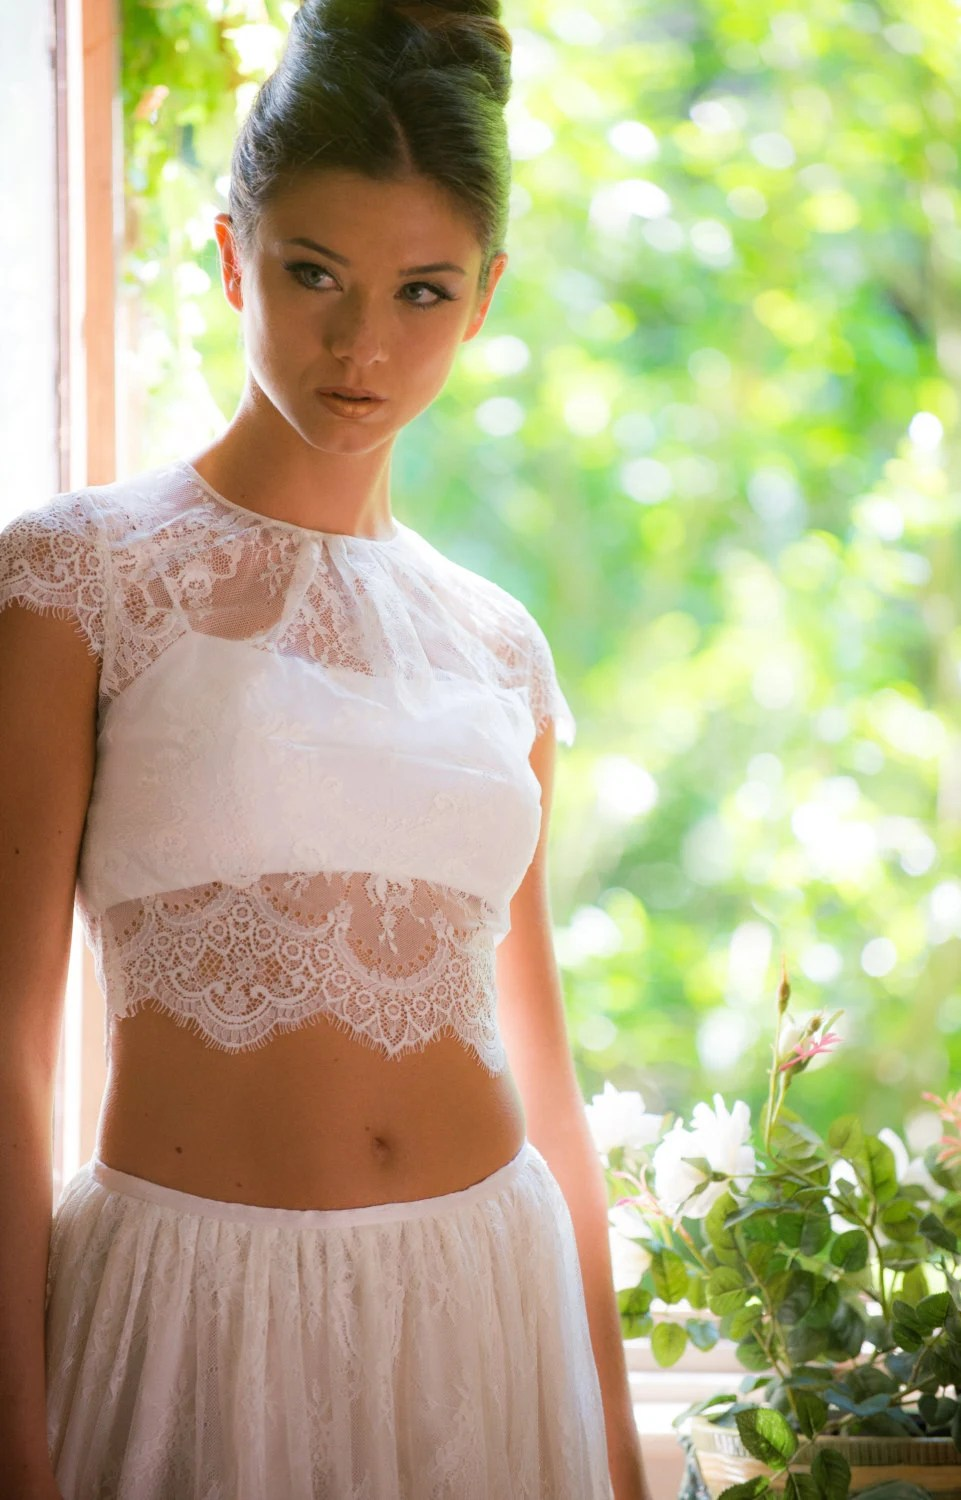 crop top wedding bustier for wedding dress Chantilly lace bridal crop top ivory lace bridal top cap sleeve bridal top button back bridal top crop top bridal gown wedding crop top